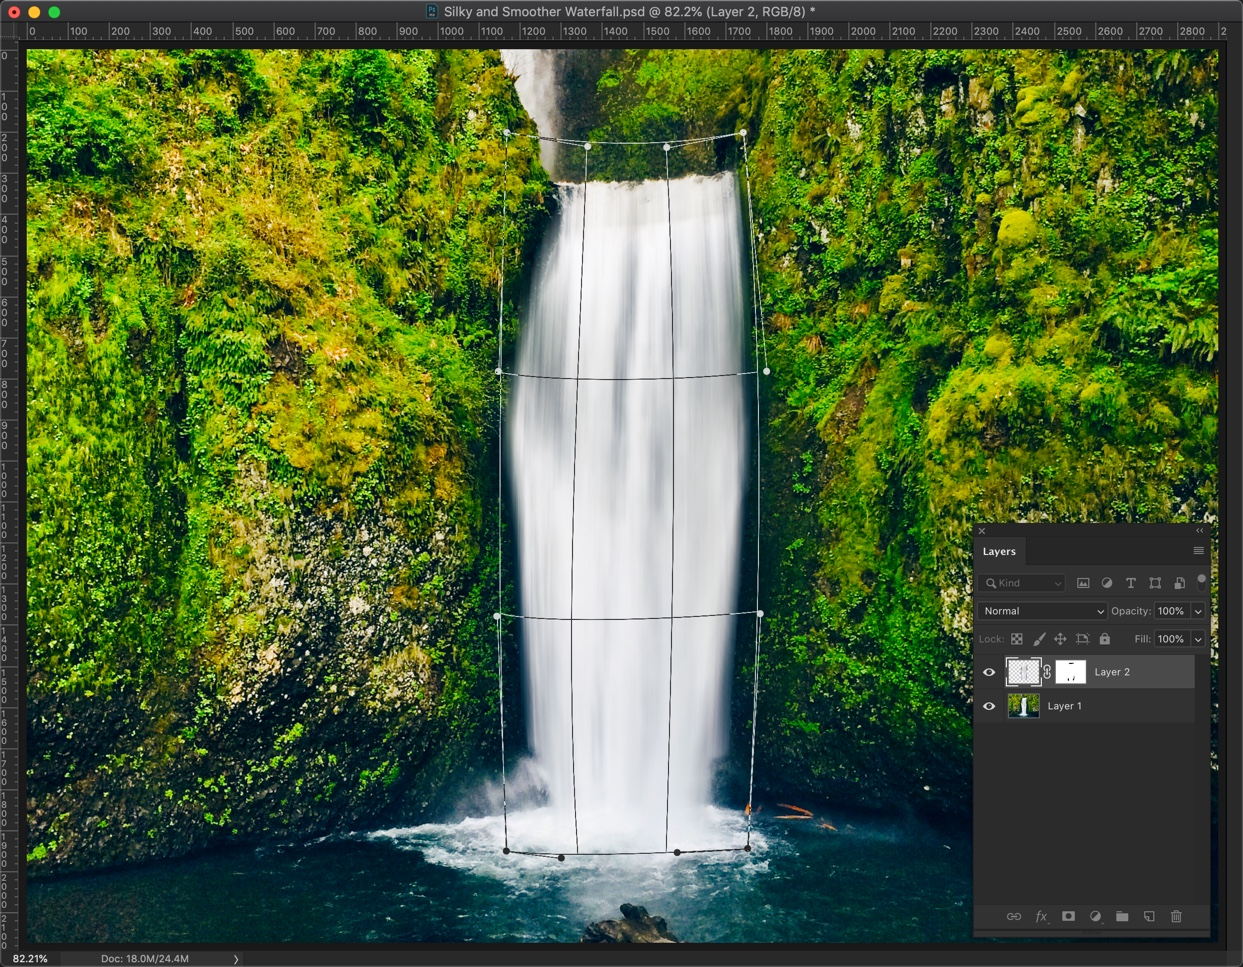 14-1 - Create a Silky and Smooth Waterfall in Photoshop